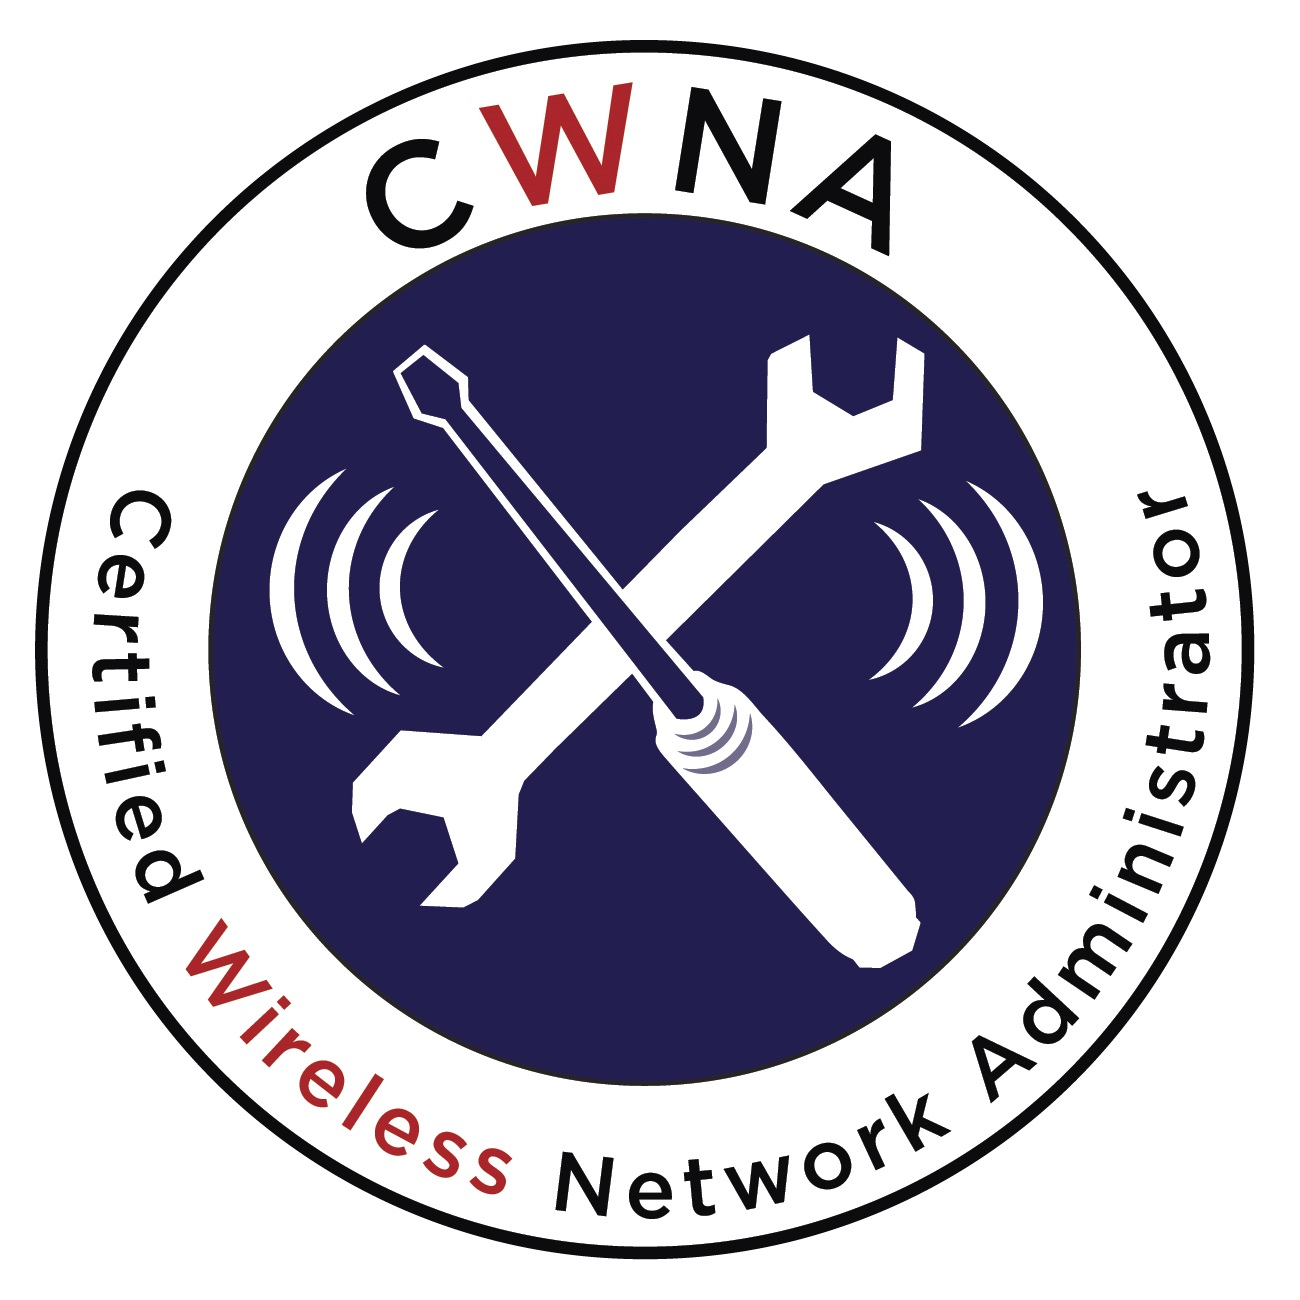 Administrator - Cwnp certified wireless network administrator